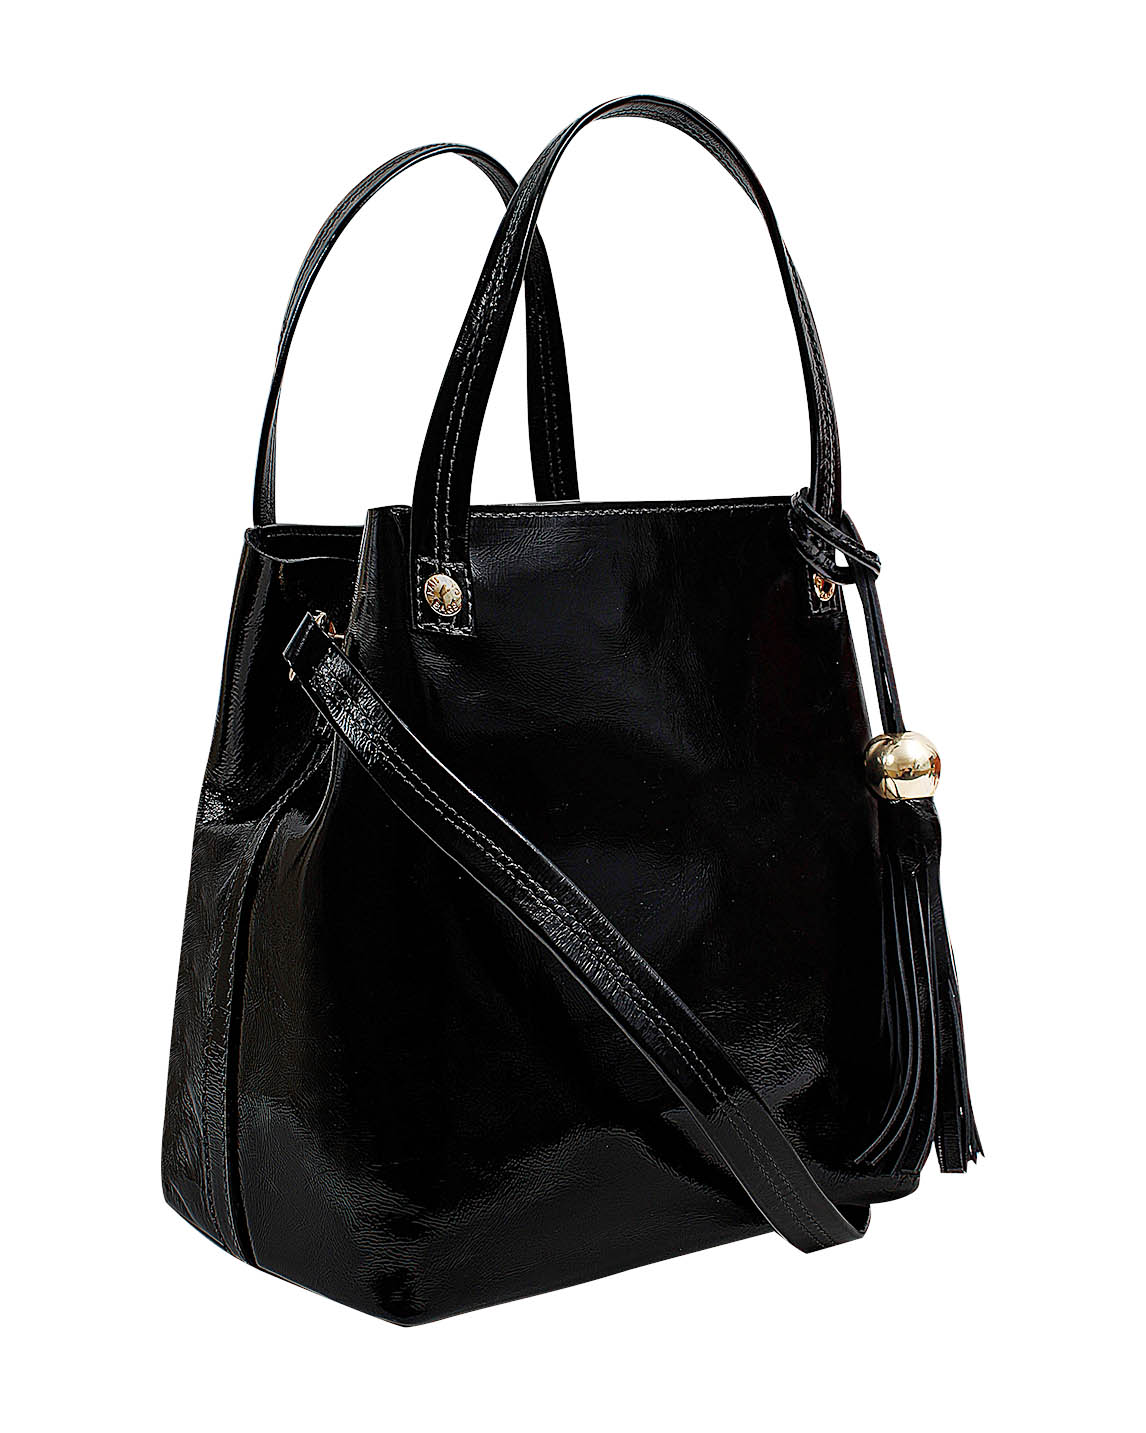 Cartera Tote Bags DS-3226 Color Negro